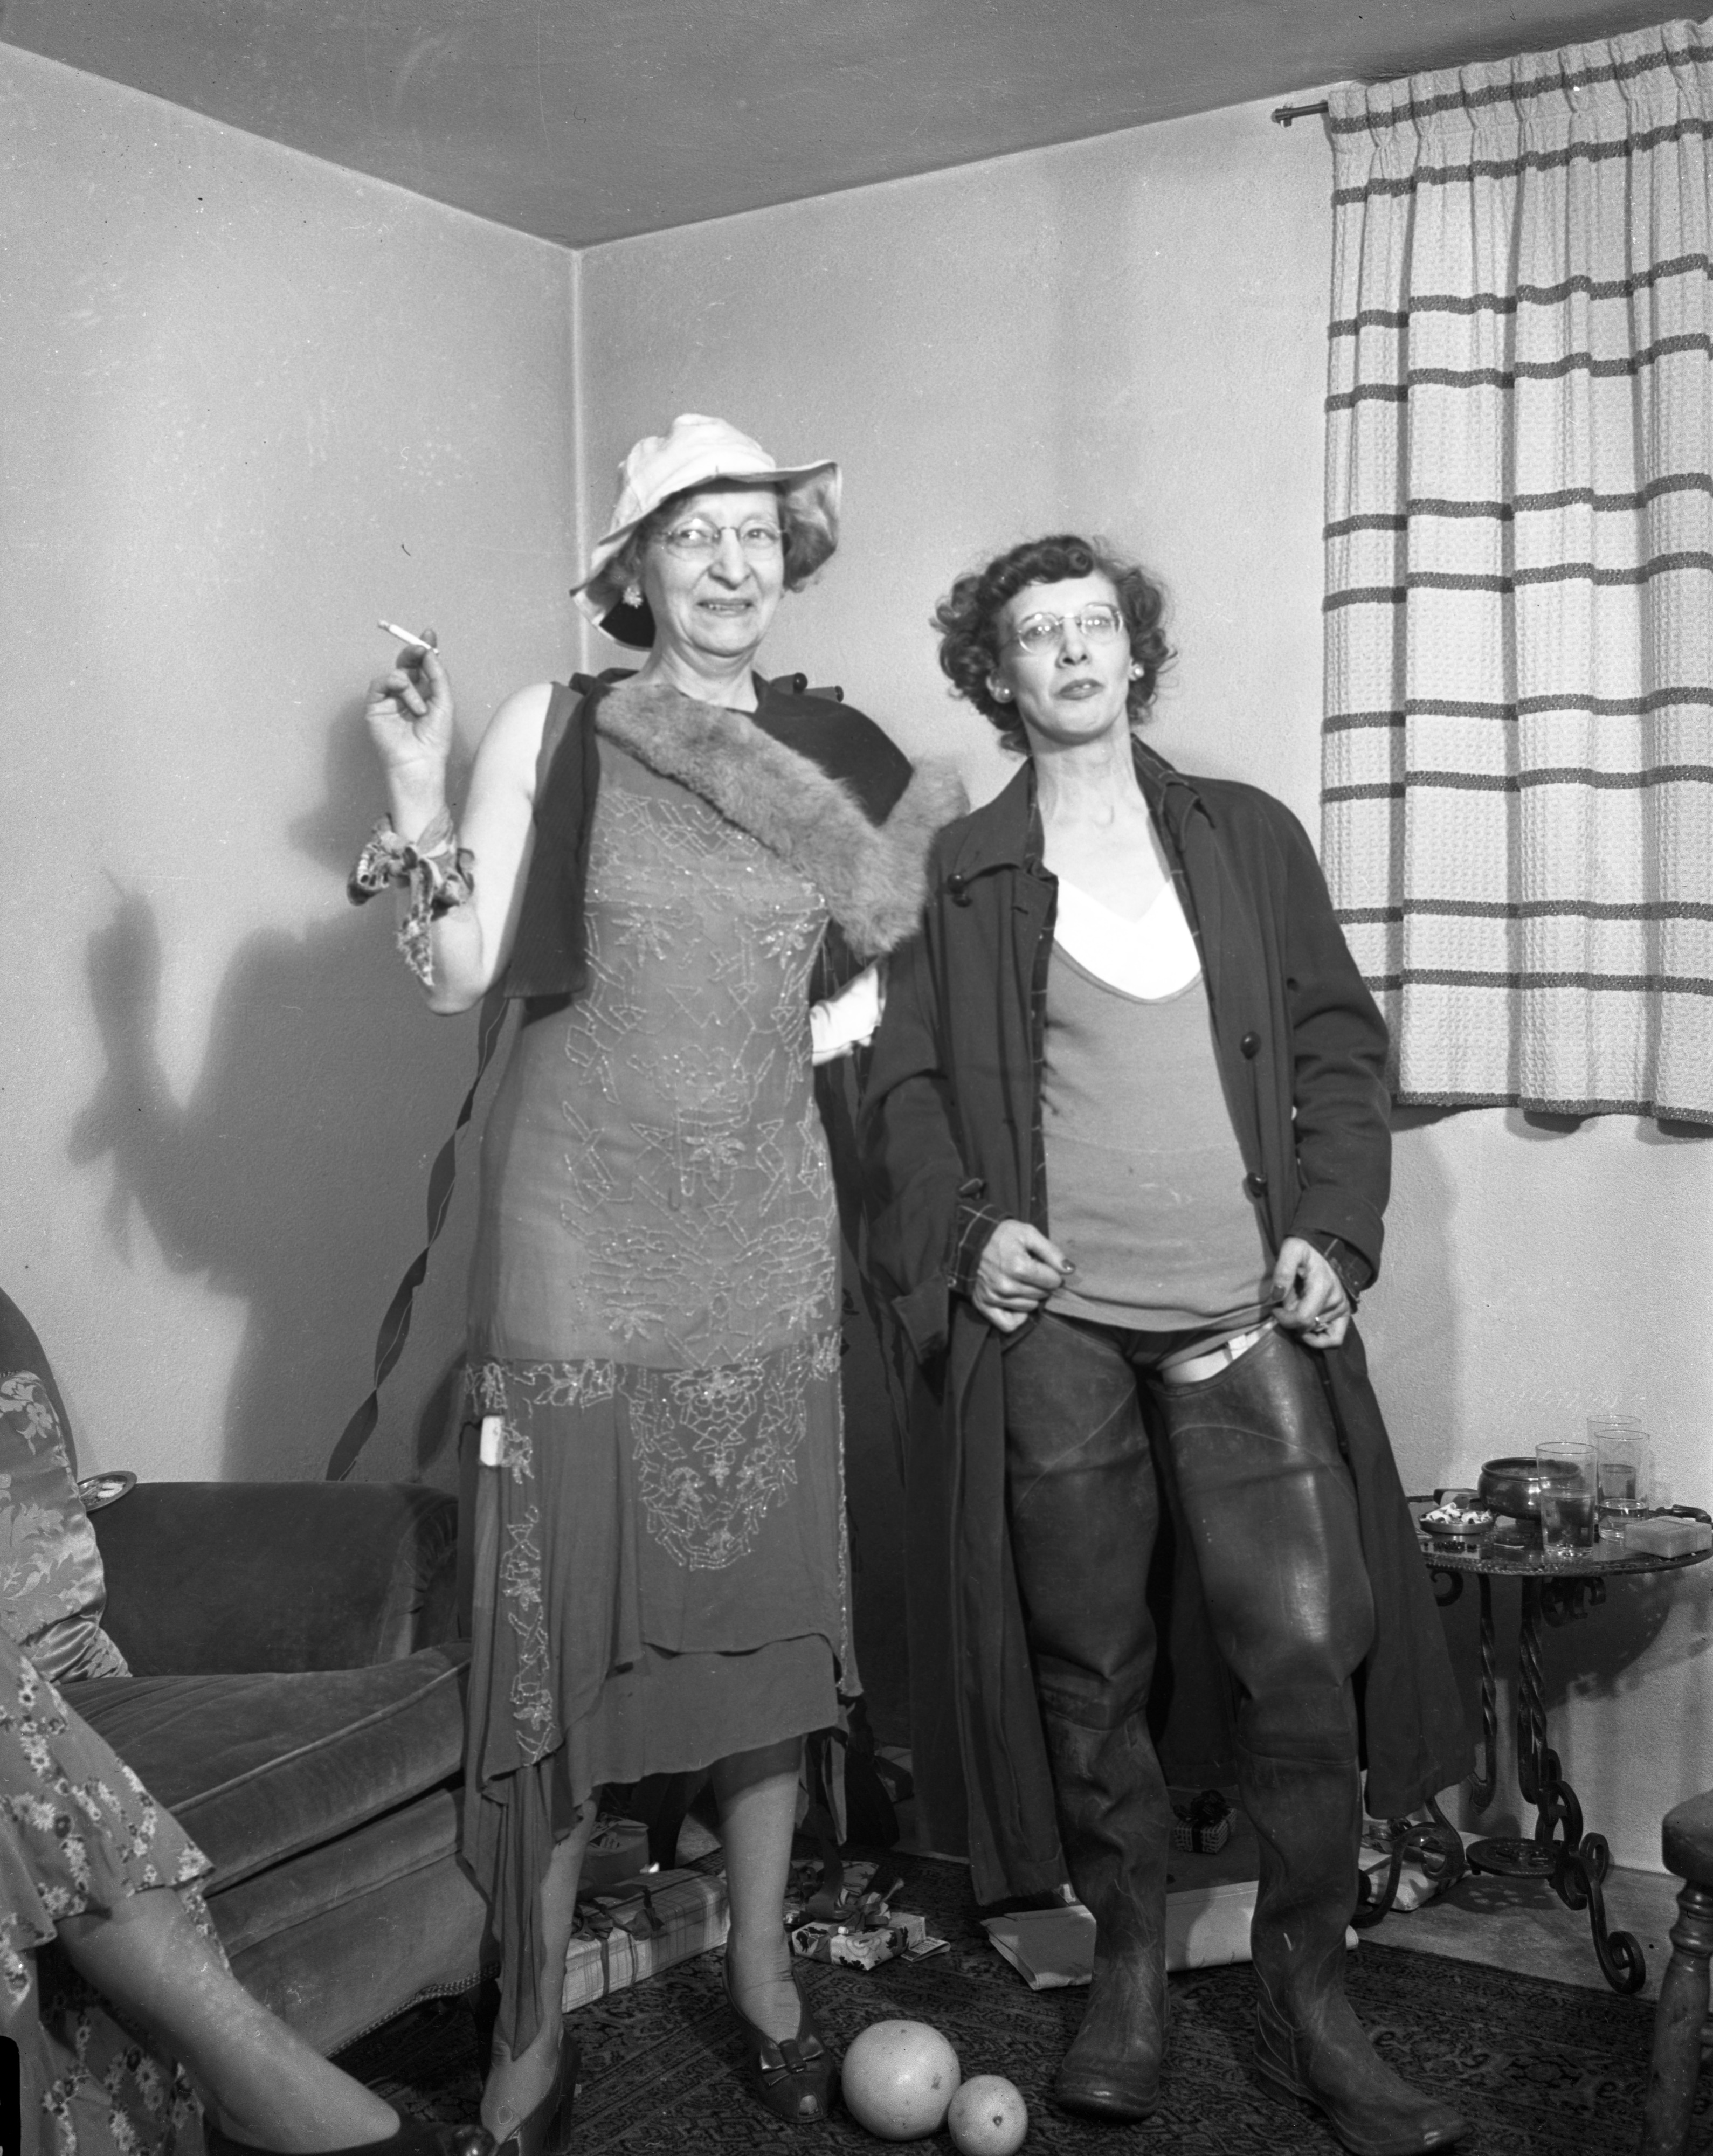 Ann Arbor News Girls' Club and Costume Party, 1944-45 image